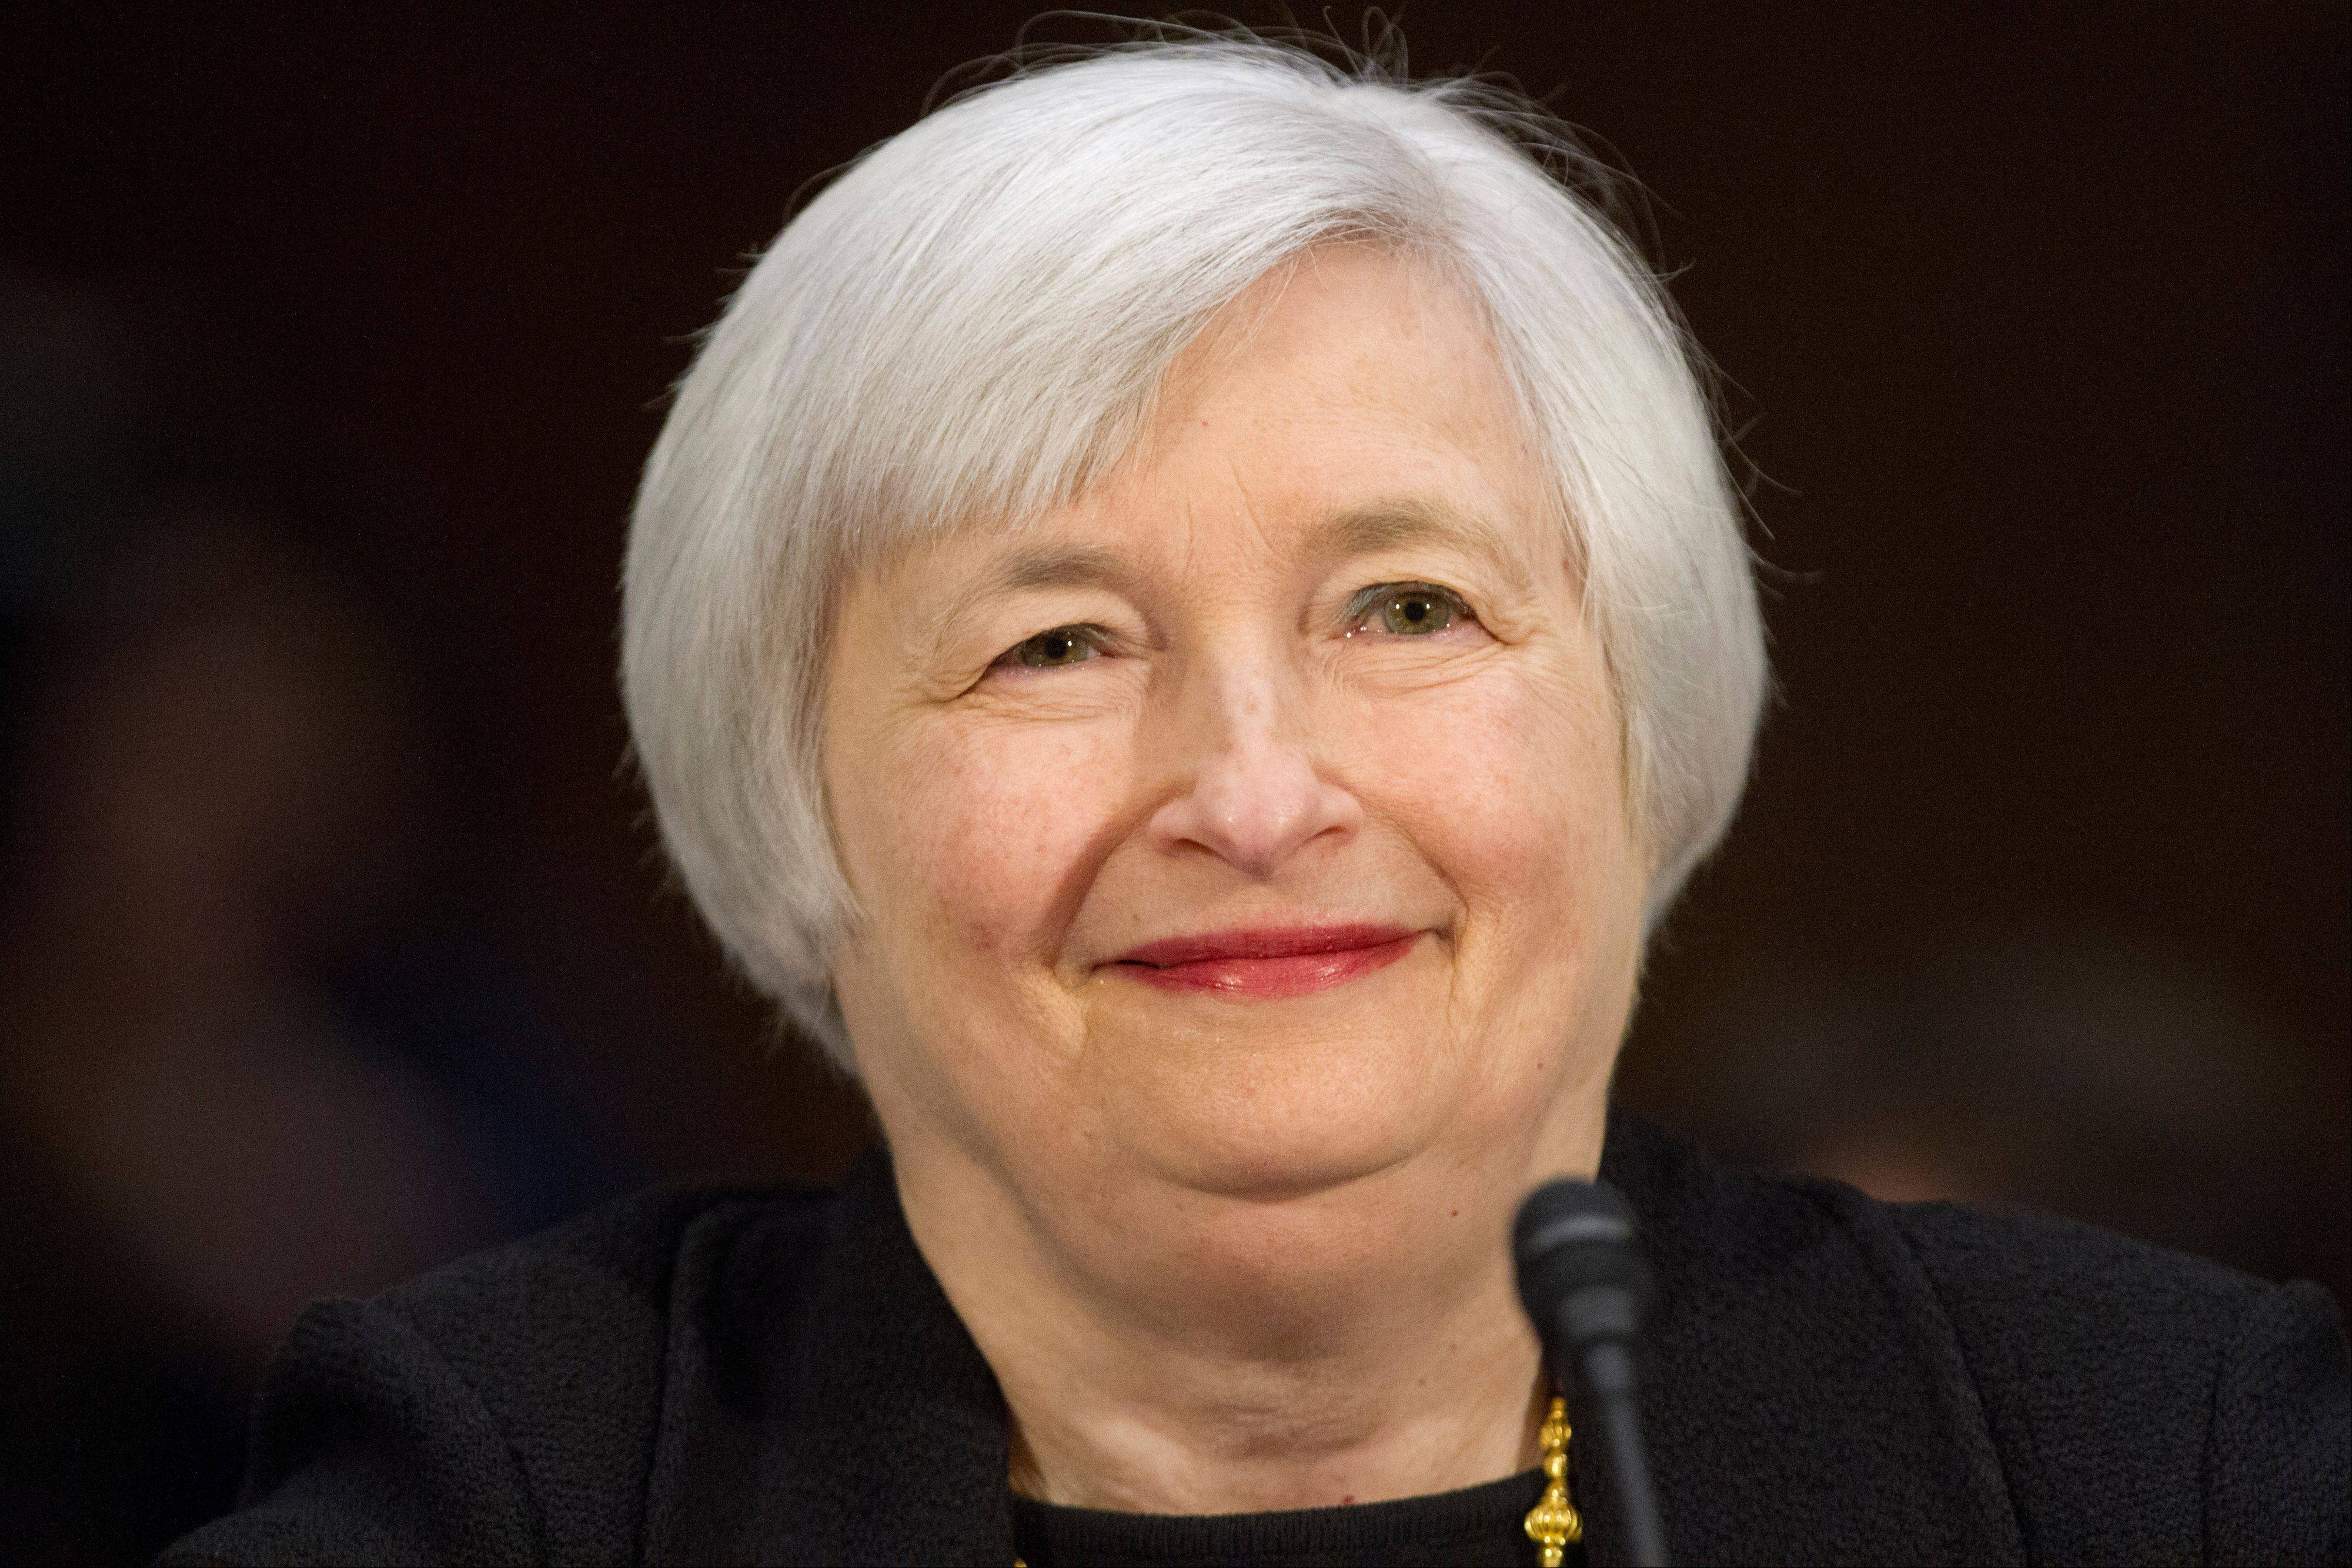 The Senate on Monday approved Janet Yellen, as Federal Reserve Board chairman, the first woman to serve in that role. She is a backer of the central bank�s recent efforts to spur the economy with low interest rates and massive bond purchases.